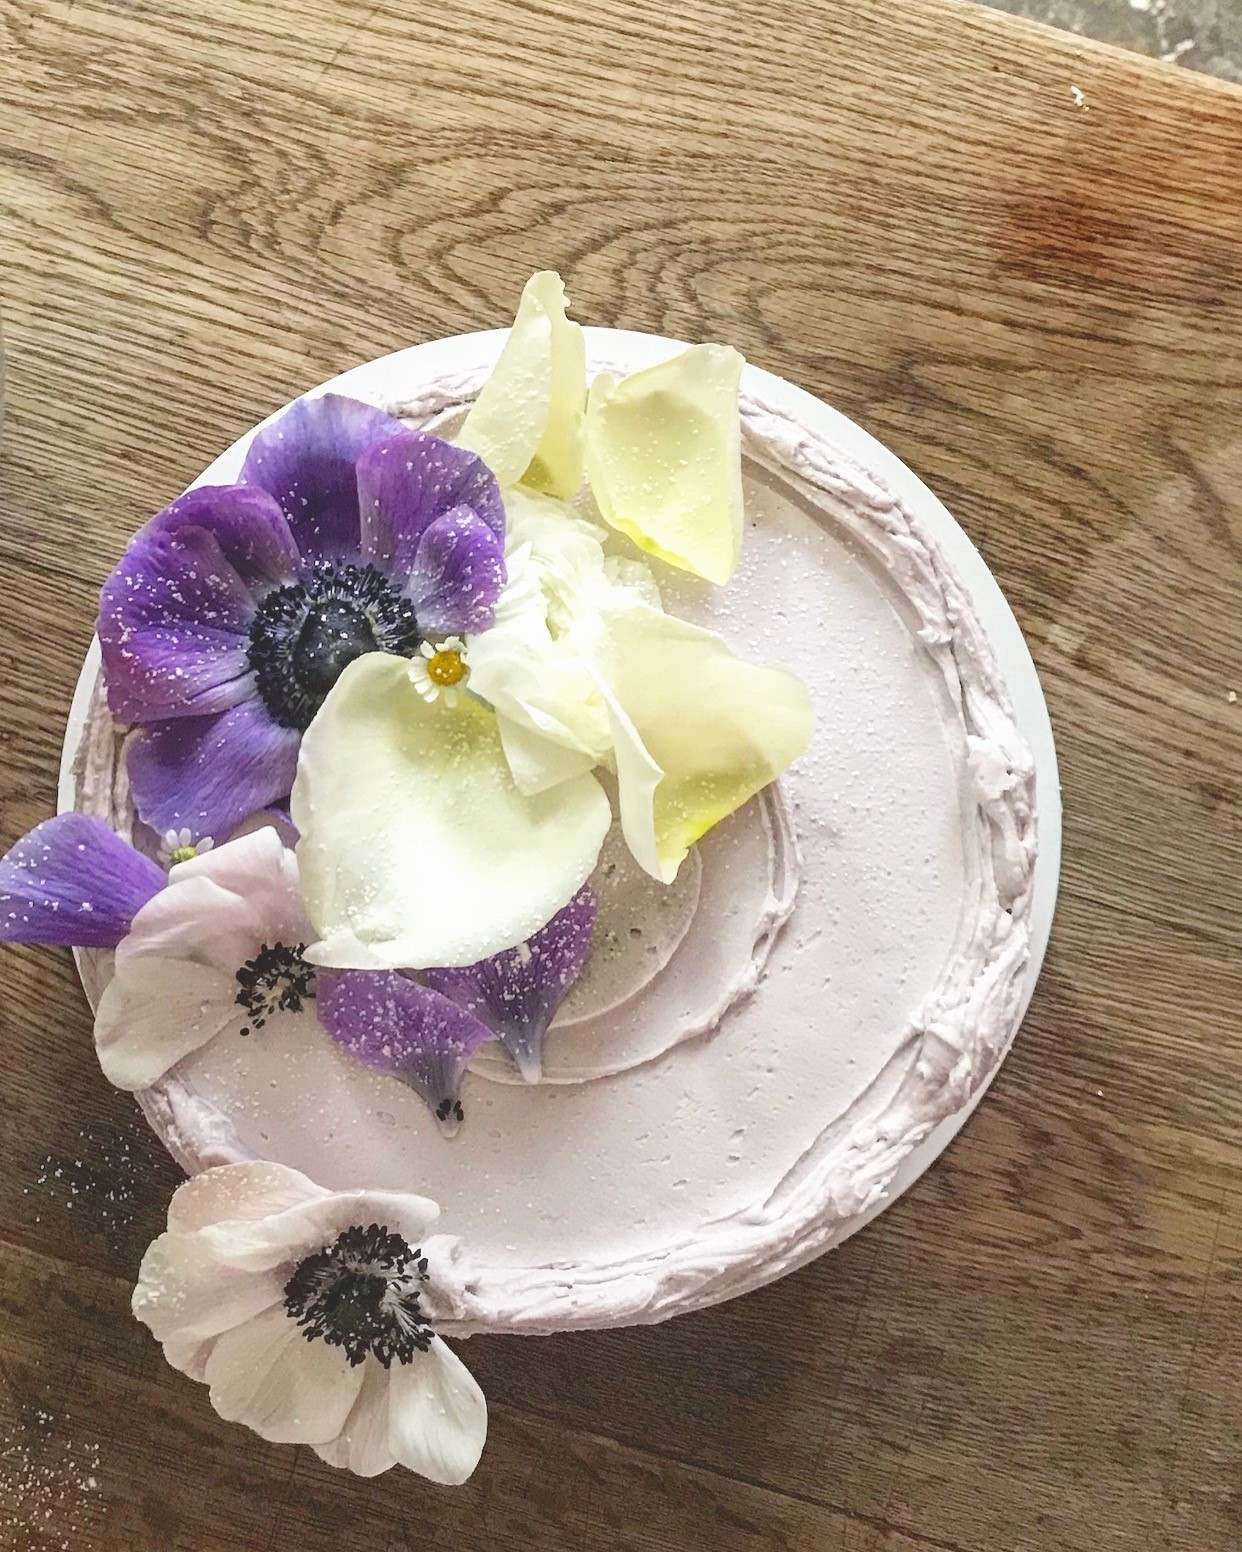 Simple old fashioned white cake with fresh flowers on top. Beautiful cake styling from Violet bakery's Claire Ptak. Come see LET THEM EAT CAKE...VIOLET CAKES. #cakelover #violetbakery #violetcakes #claireptak #shabbychic #cakedecorating #letthemeatcake #bakingideas #bakingideas #cakestyling #cakequotes